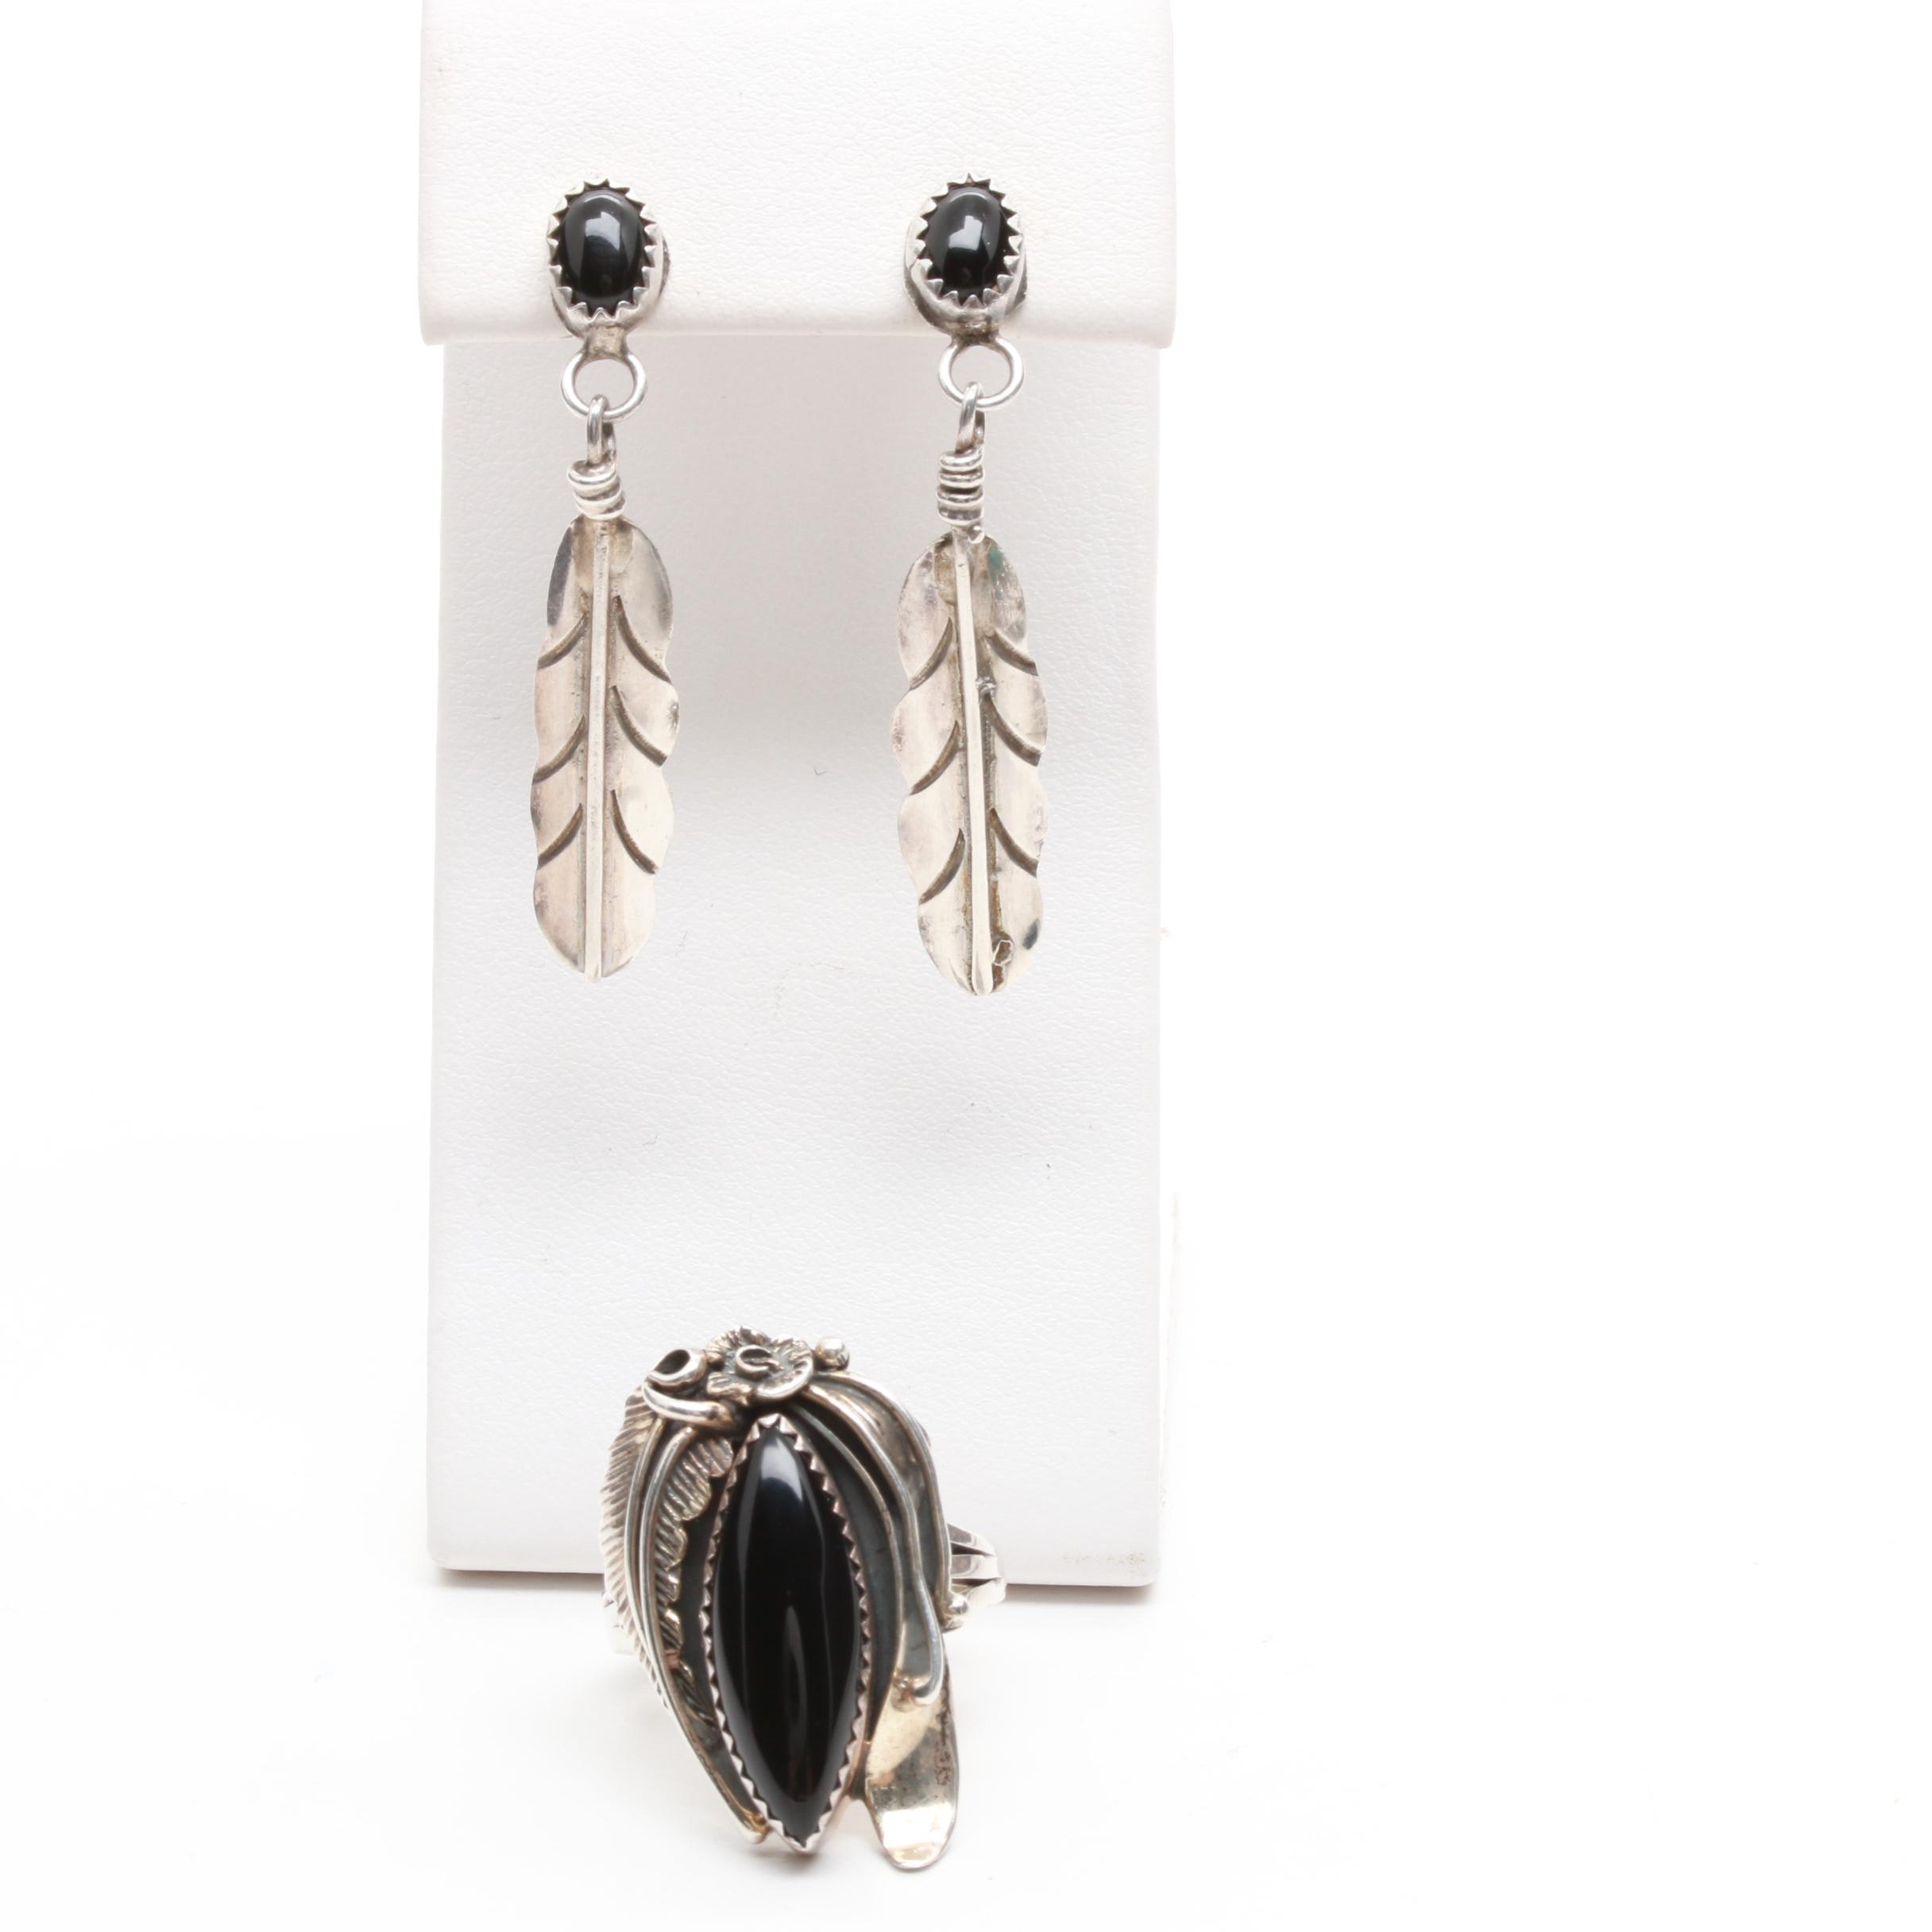 Southwestern Style Sterling Silver Black Onyx Ring and Feather Motif Earrings